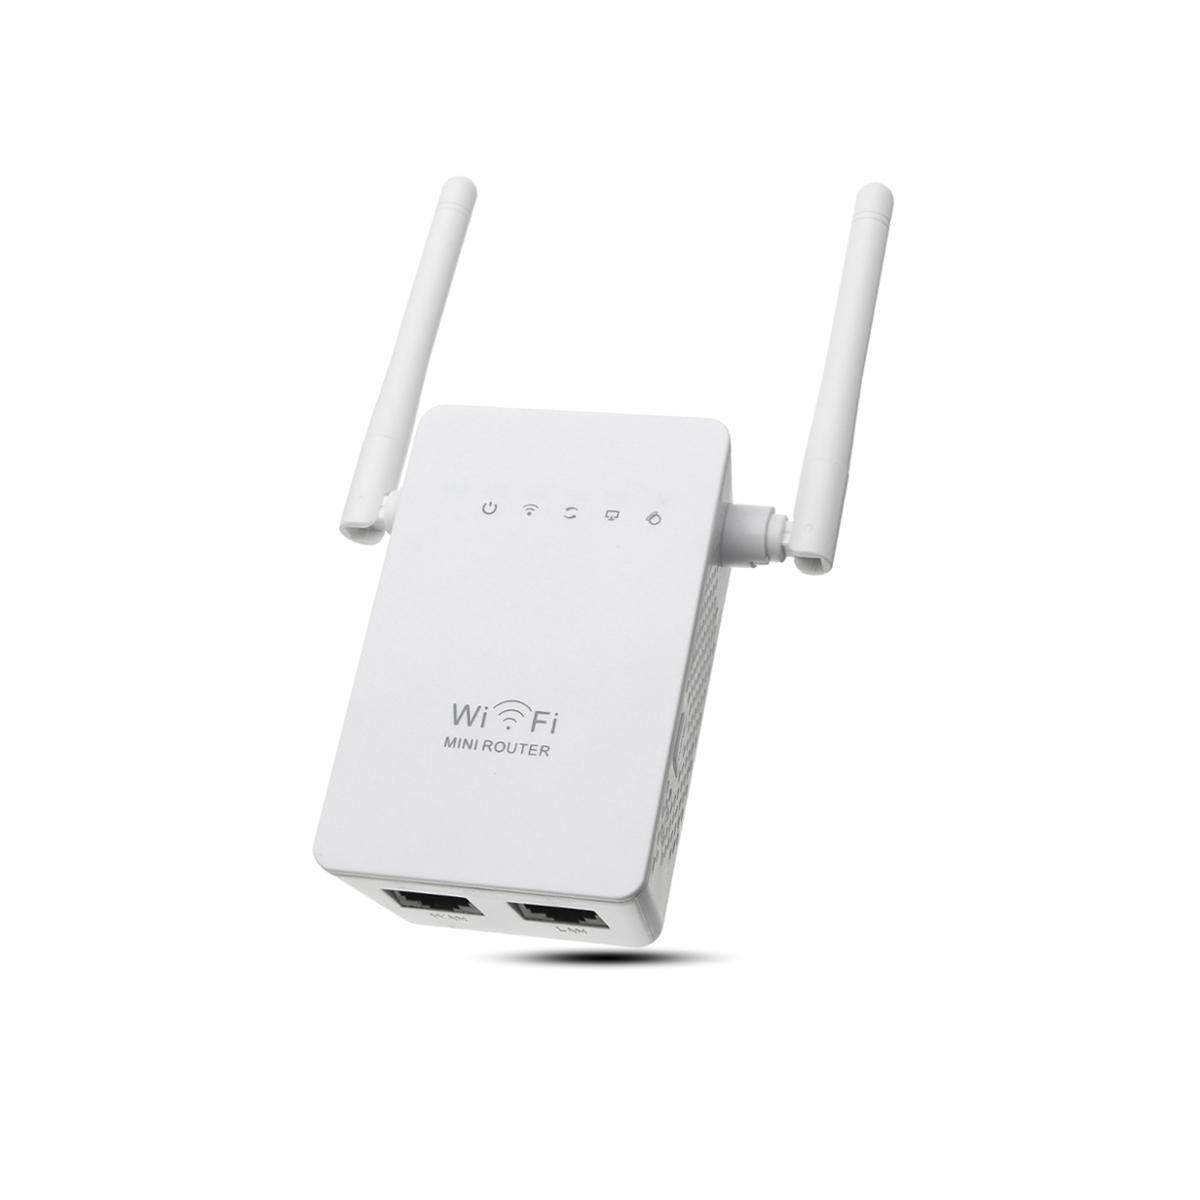 450mbps Wireless N Router Qcom 24ghz 80211bgn 1 10100m Wan 4 Tenda N301 Wireles 300mbps 4port 2 Antena 80211 Dual Antennas Wifi Range Repeater Booster Ap Uk Plug